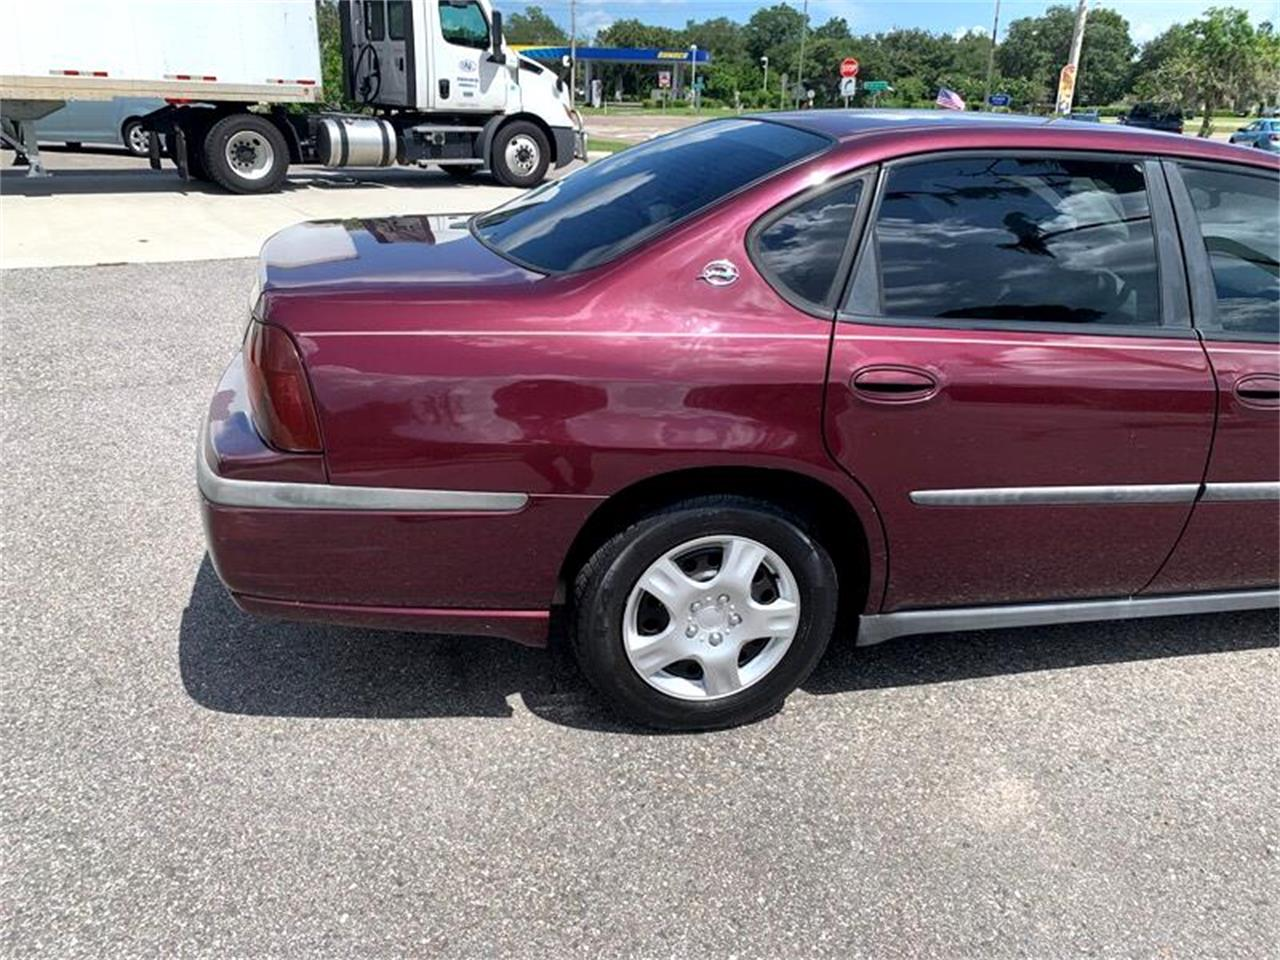 2004 Chevrolet Impala (CC-1366207) for sale in Tavares, Florida